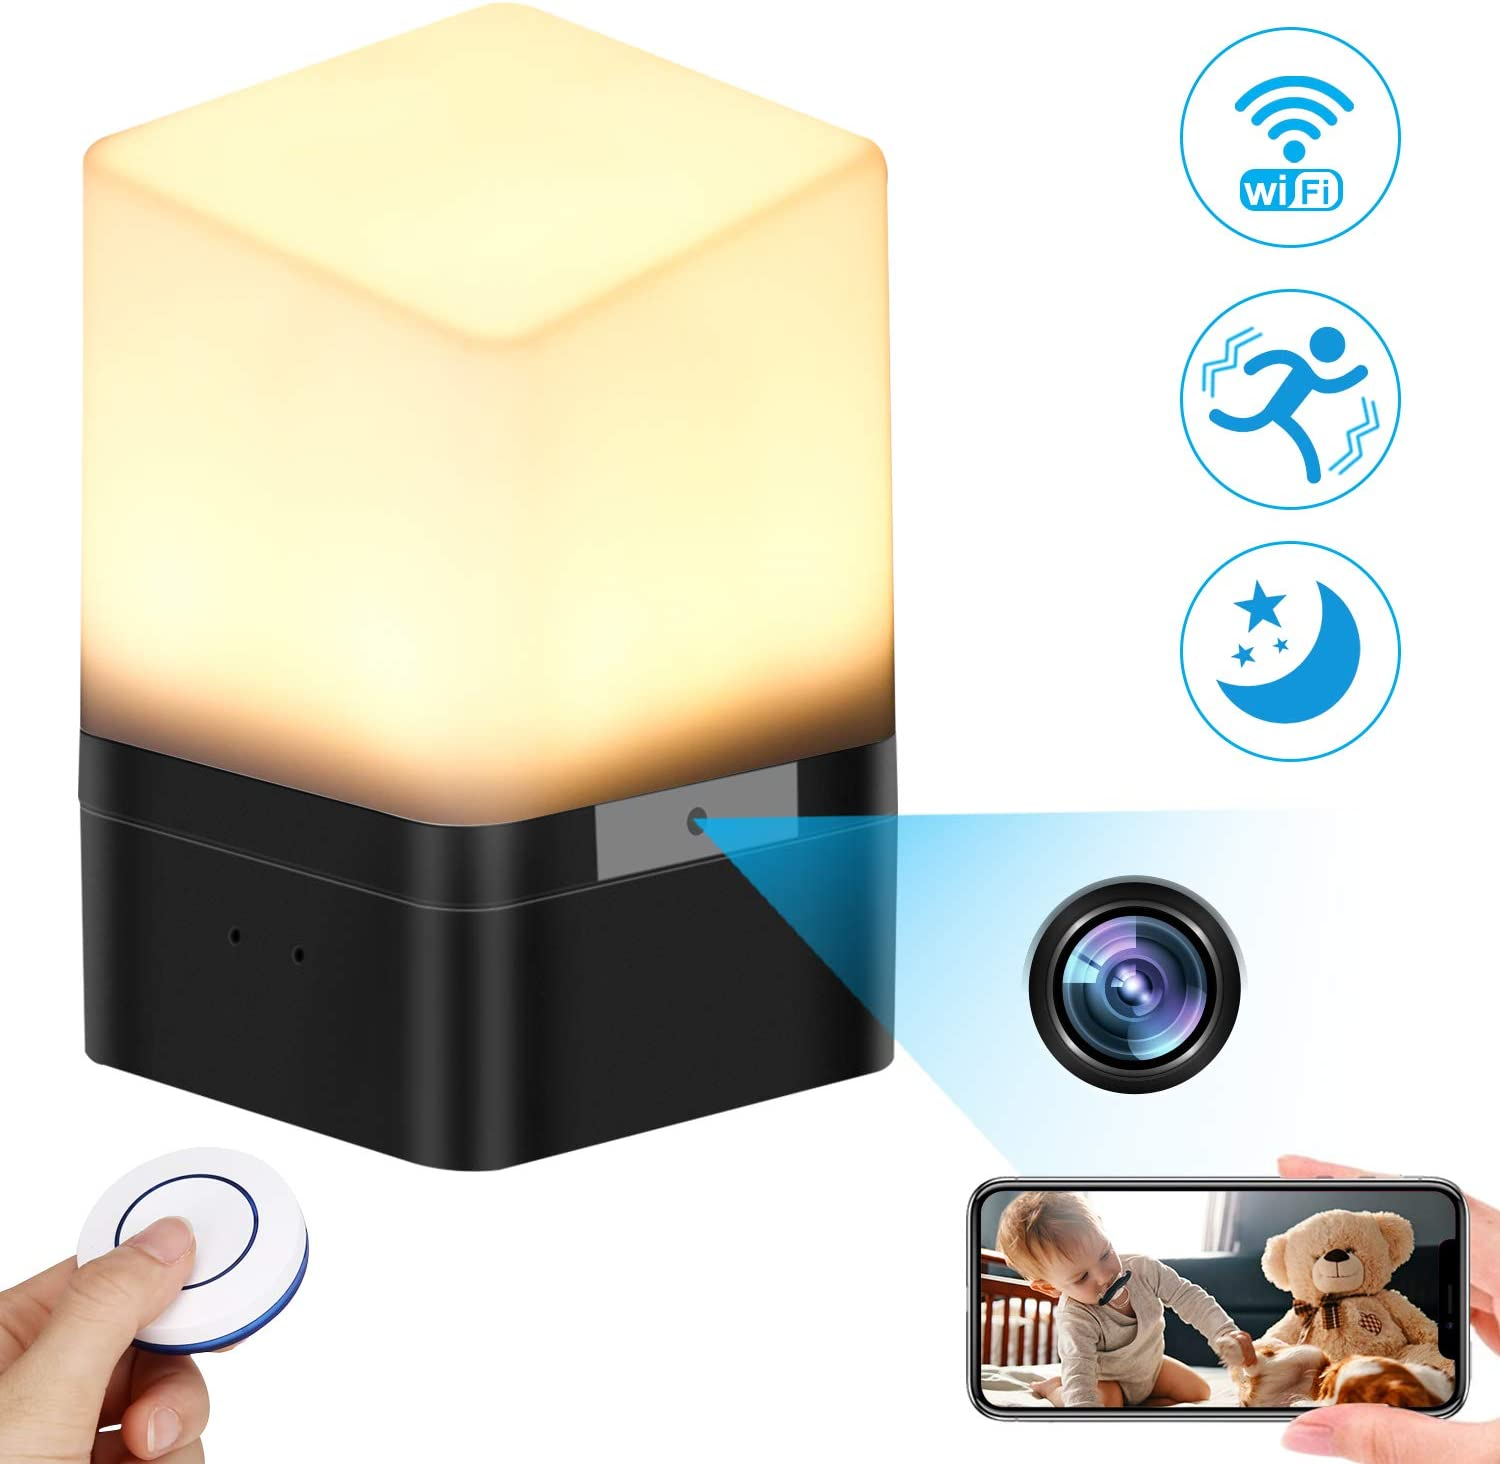 Spy Camera Lamp, KAUPOONK Hidden Camera FHD 1080P WiFi Security Camera Micro Motion Detection Surveillance Cam Indoor USB Chargeable Lamp Video Recorder for Home Employees Car Office Kids Nursery